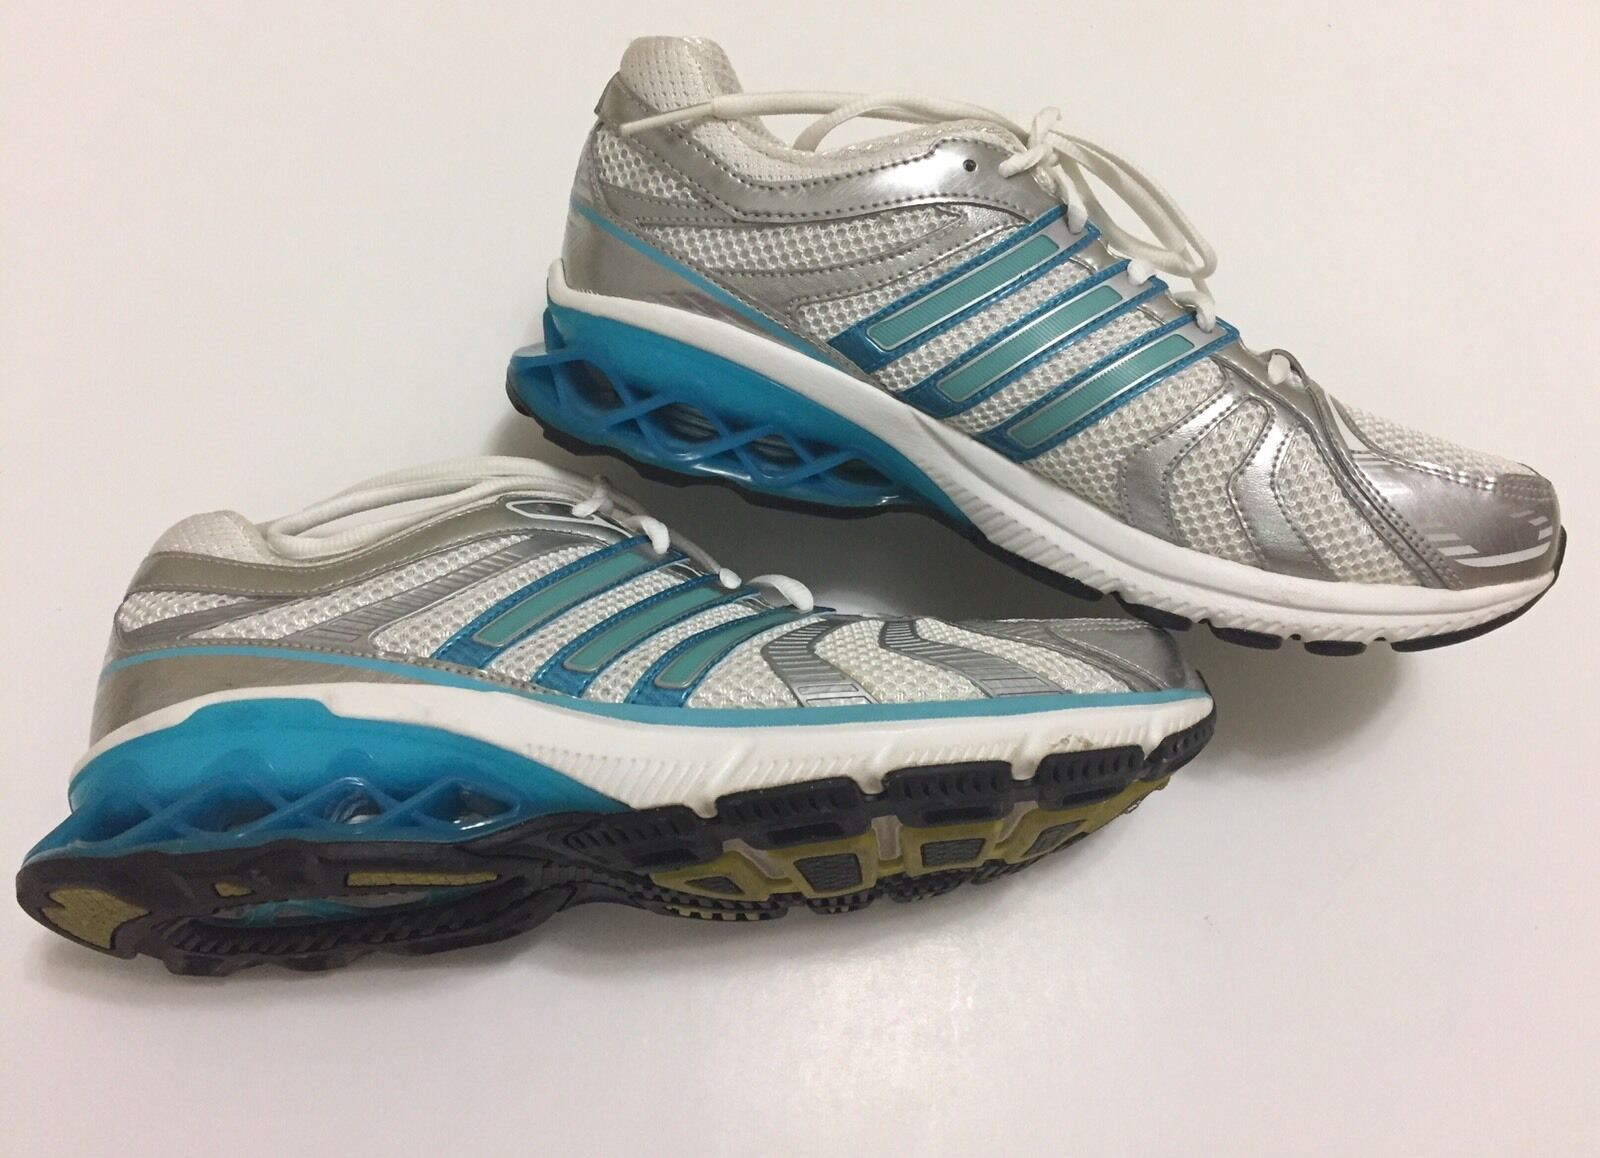 Adidas Women's Boost 2 Running Athletic Shoes Shoe Size 10.5 G18671